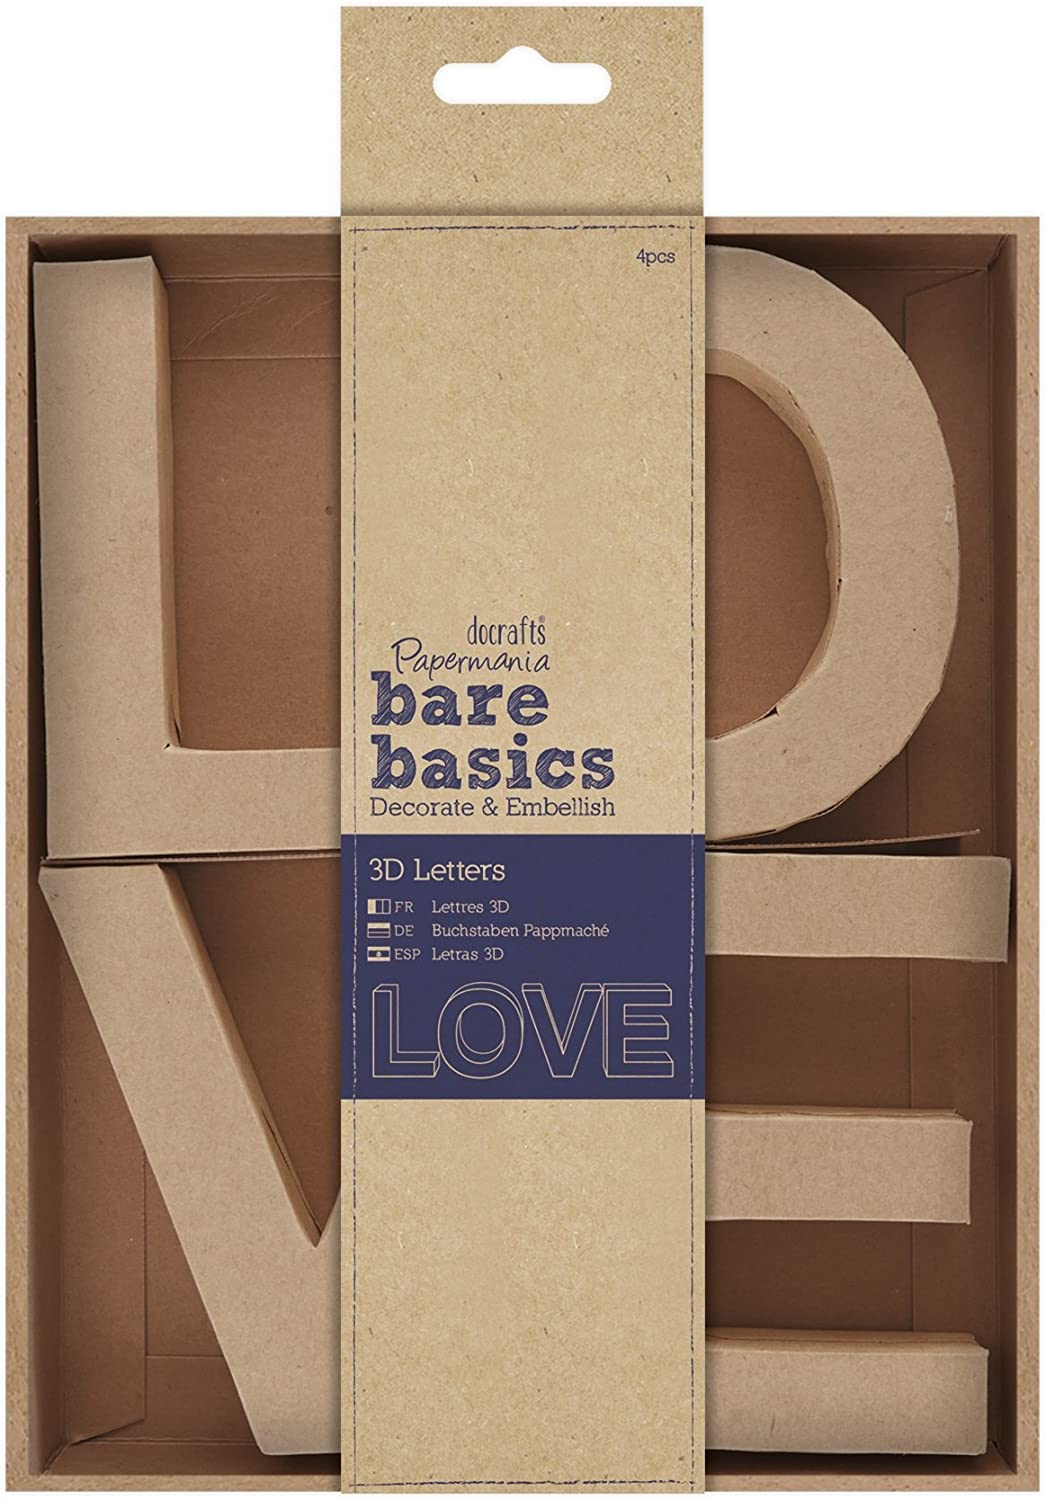 4 Pack Brown docrafts PMA174072 Love Papermania Bare Basics 3D Letters 10cm